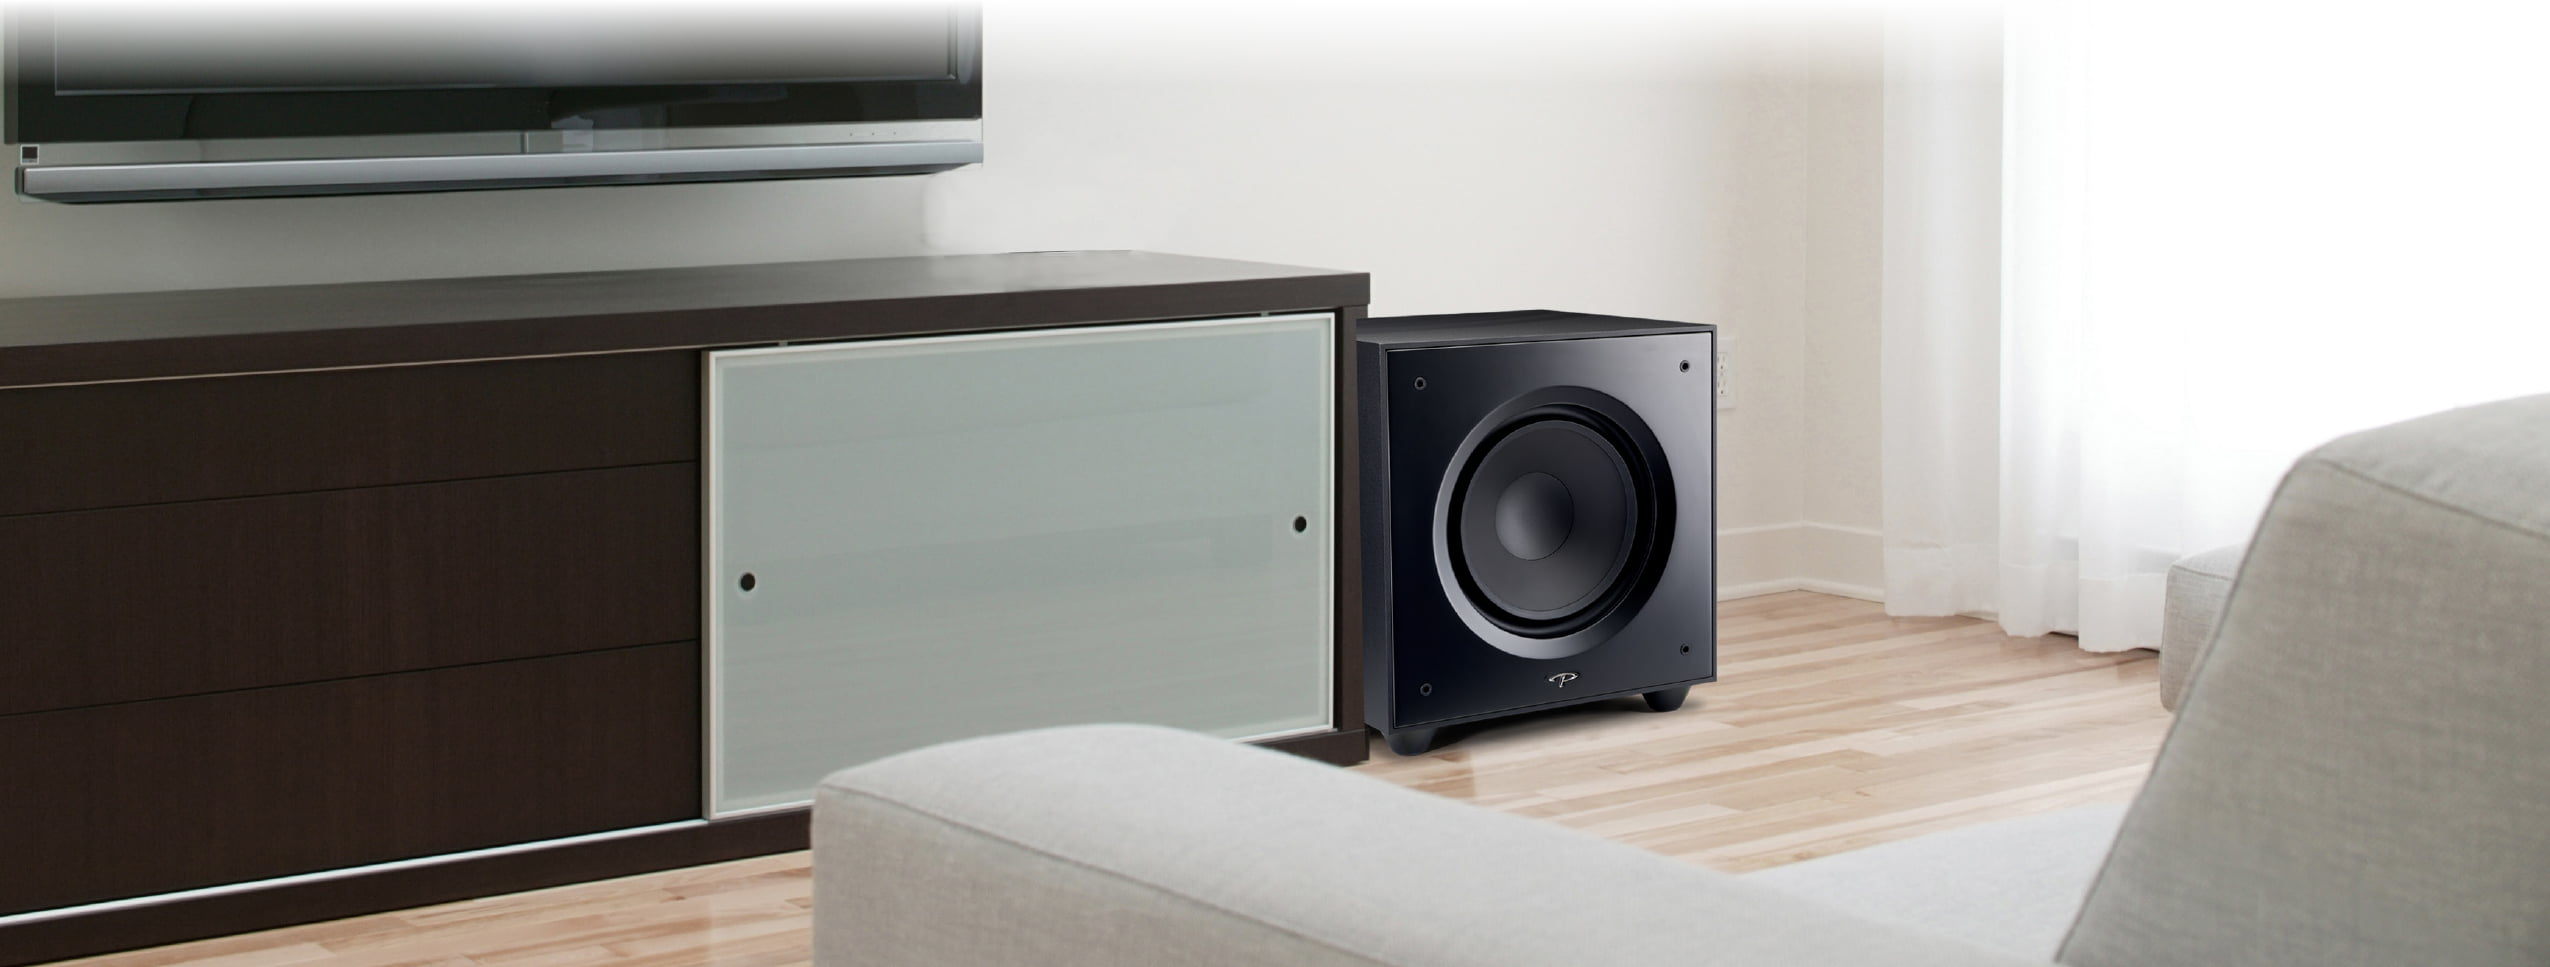 Paradigm Defiance X Series Subwoofers | Gibbys Electronic Supermarket